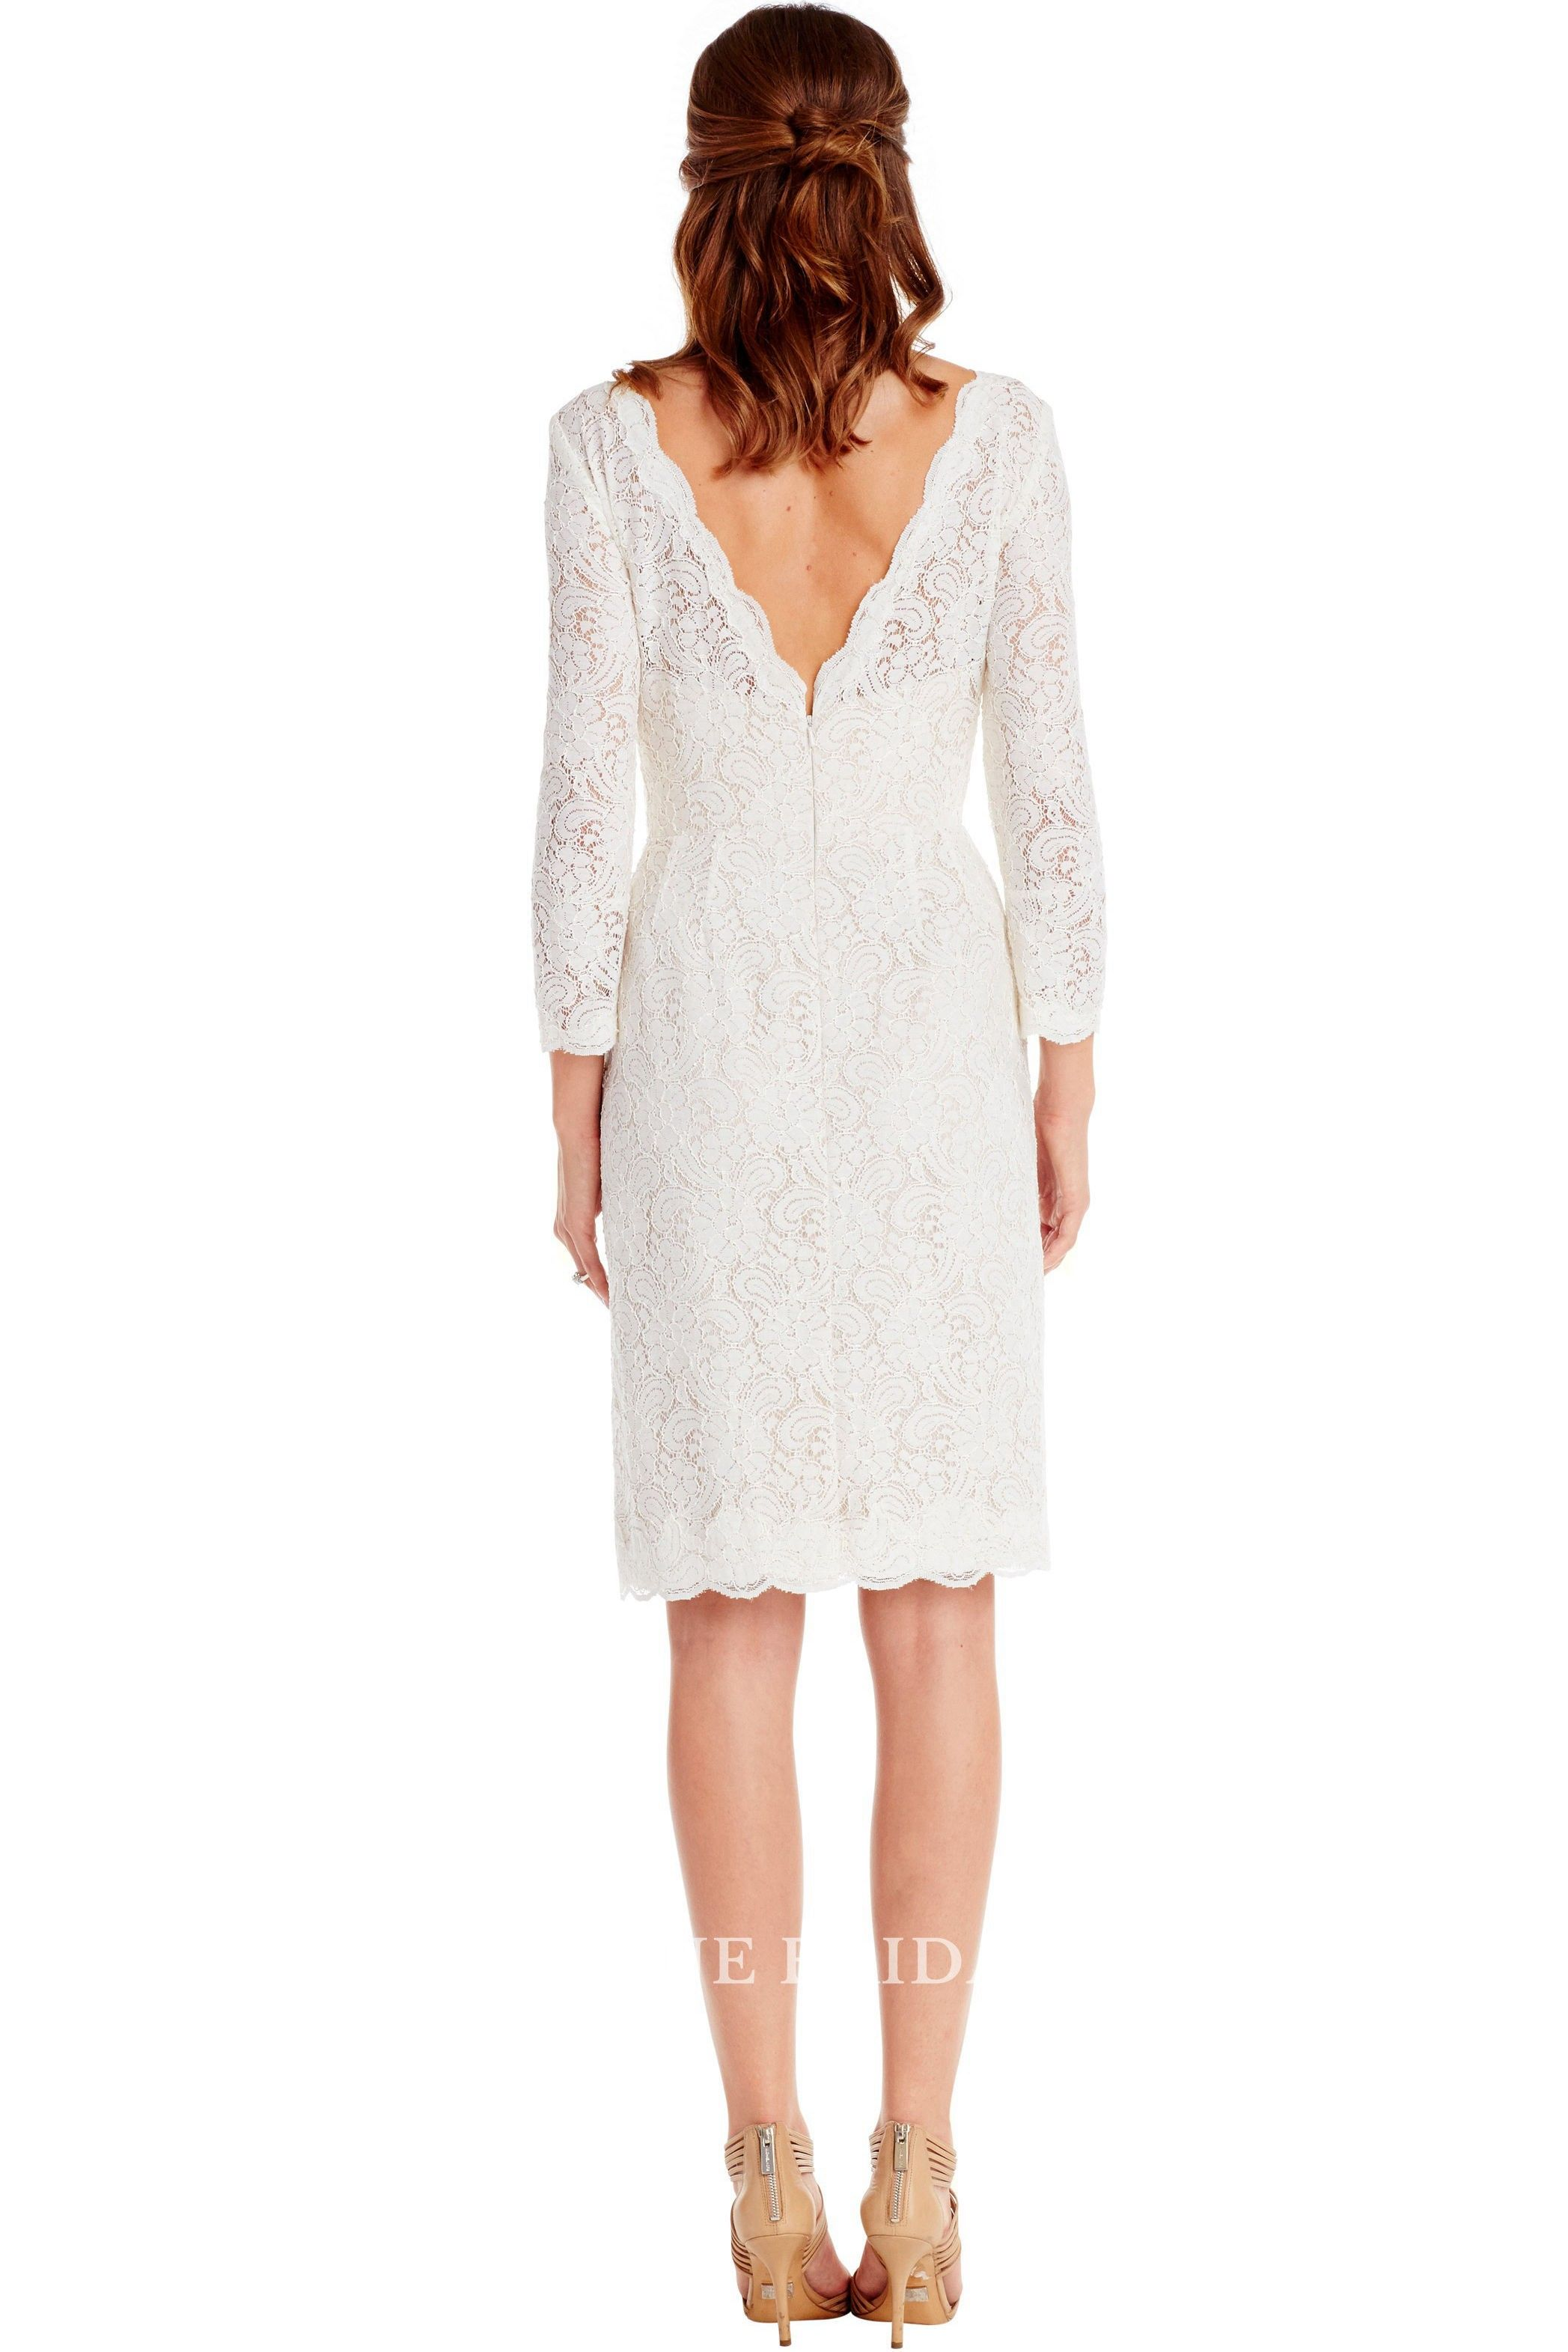 Pencil longsleeve bateauneck midi lace little white dress white